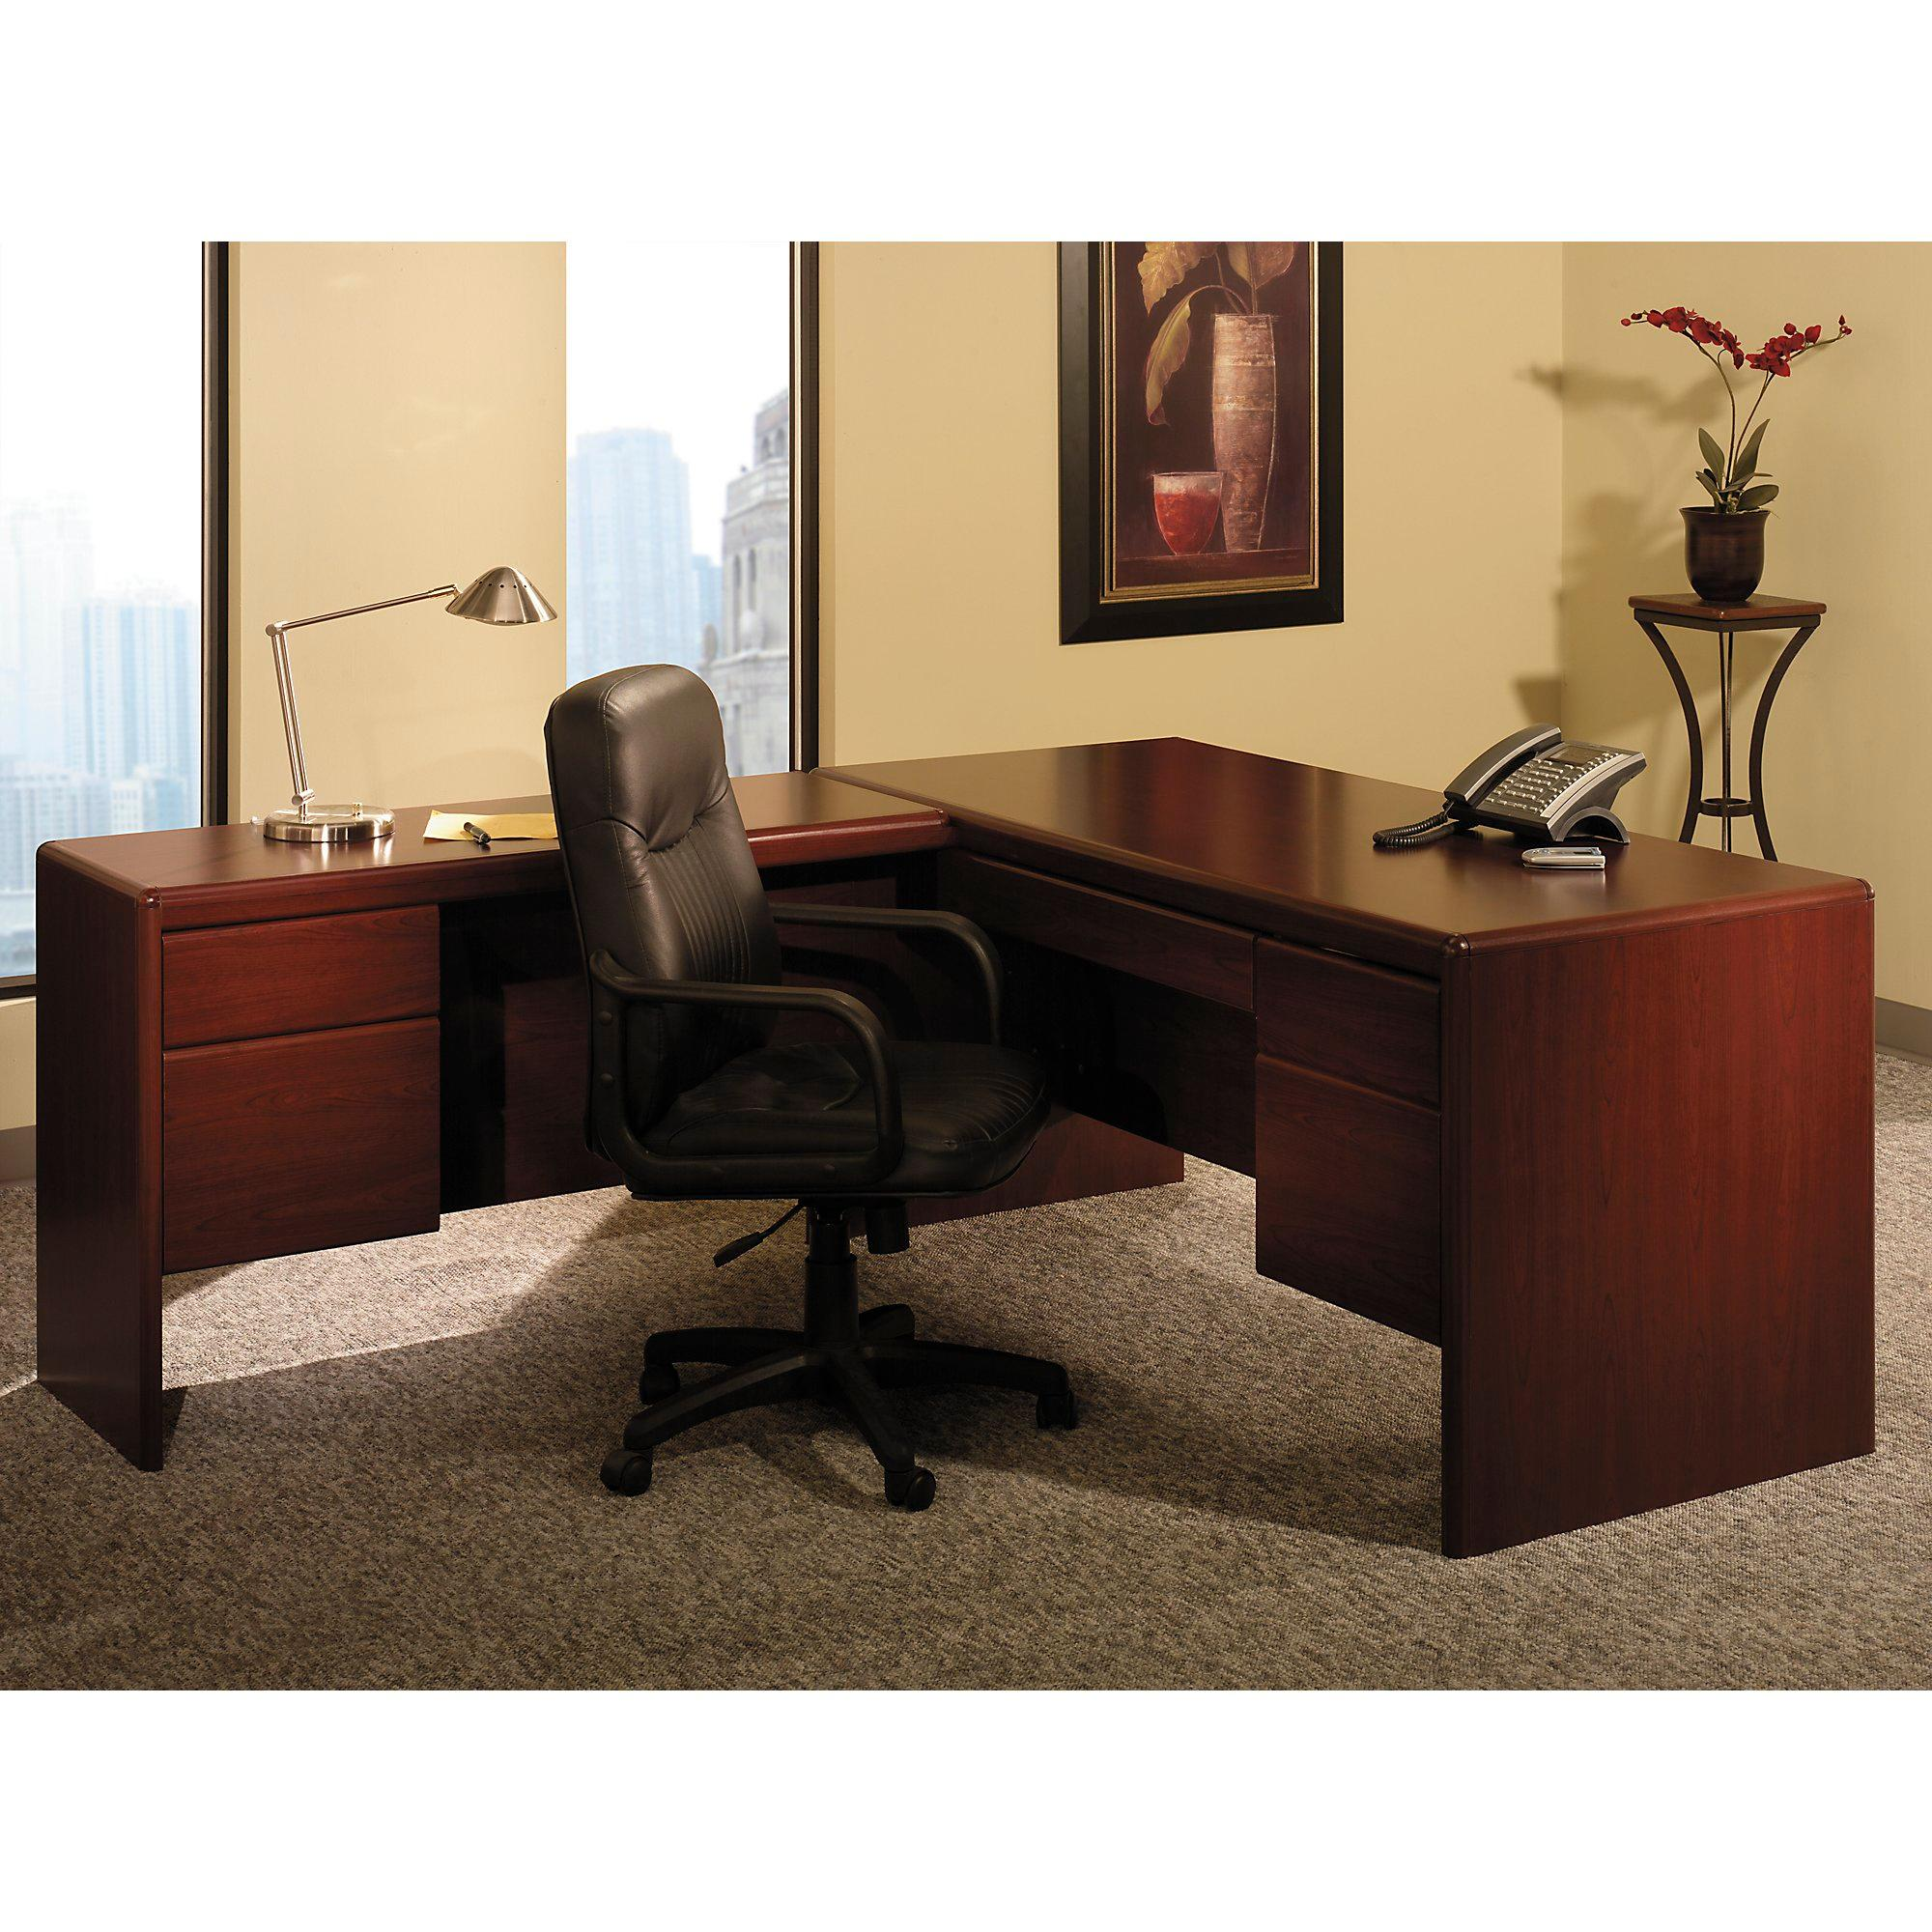 surfaces furniture bush decorative details panels office hardboard products harboard composite